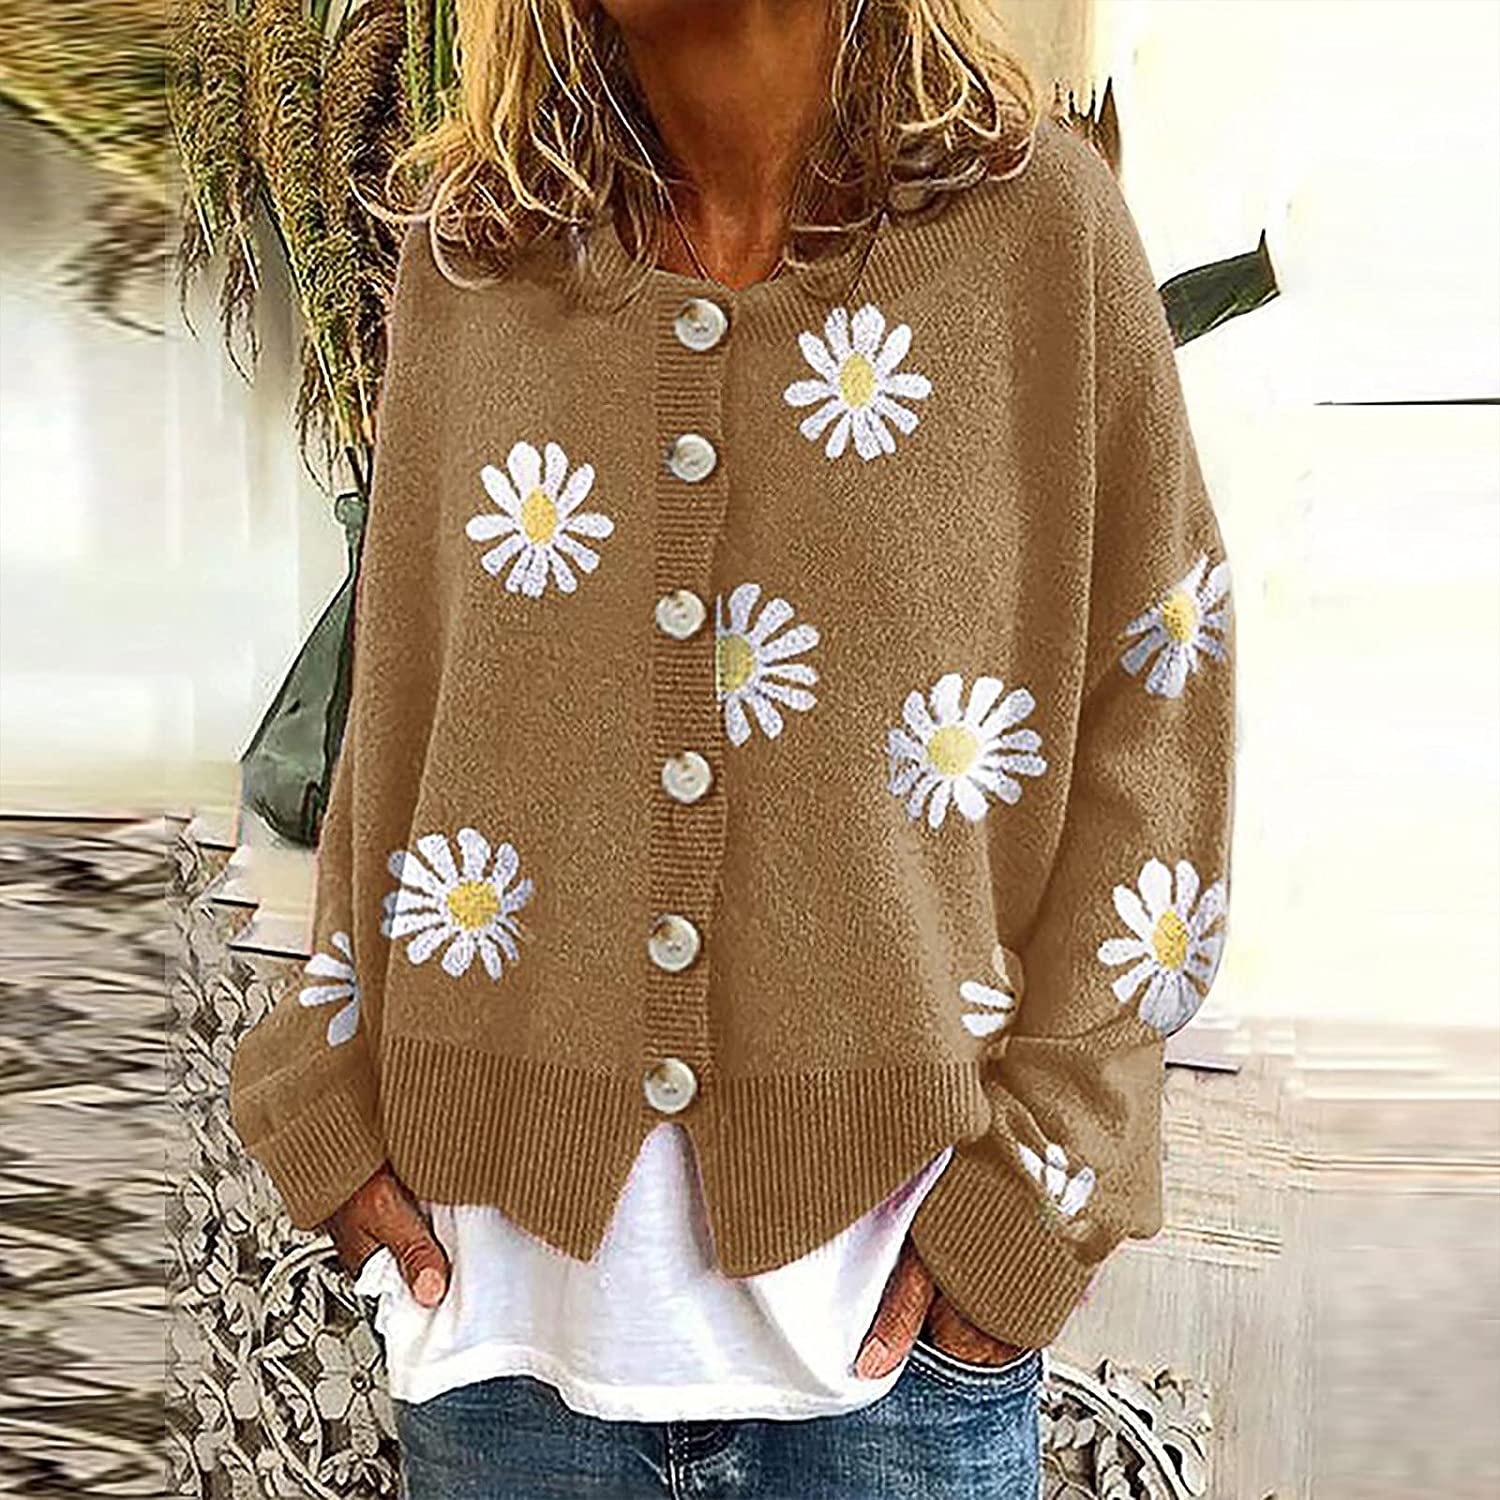 Cardigan Sweaters for Women Casual Floral Printed Outerwear Long Sleeve Buttons Knitted Cardigan Coats